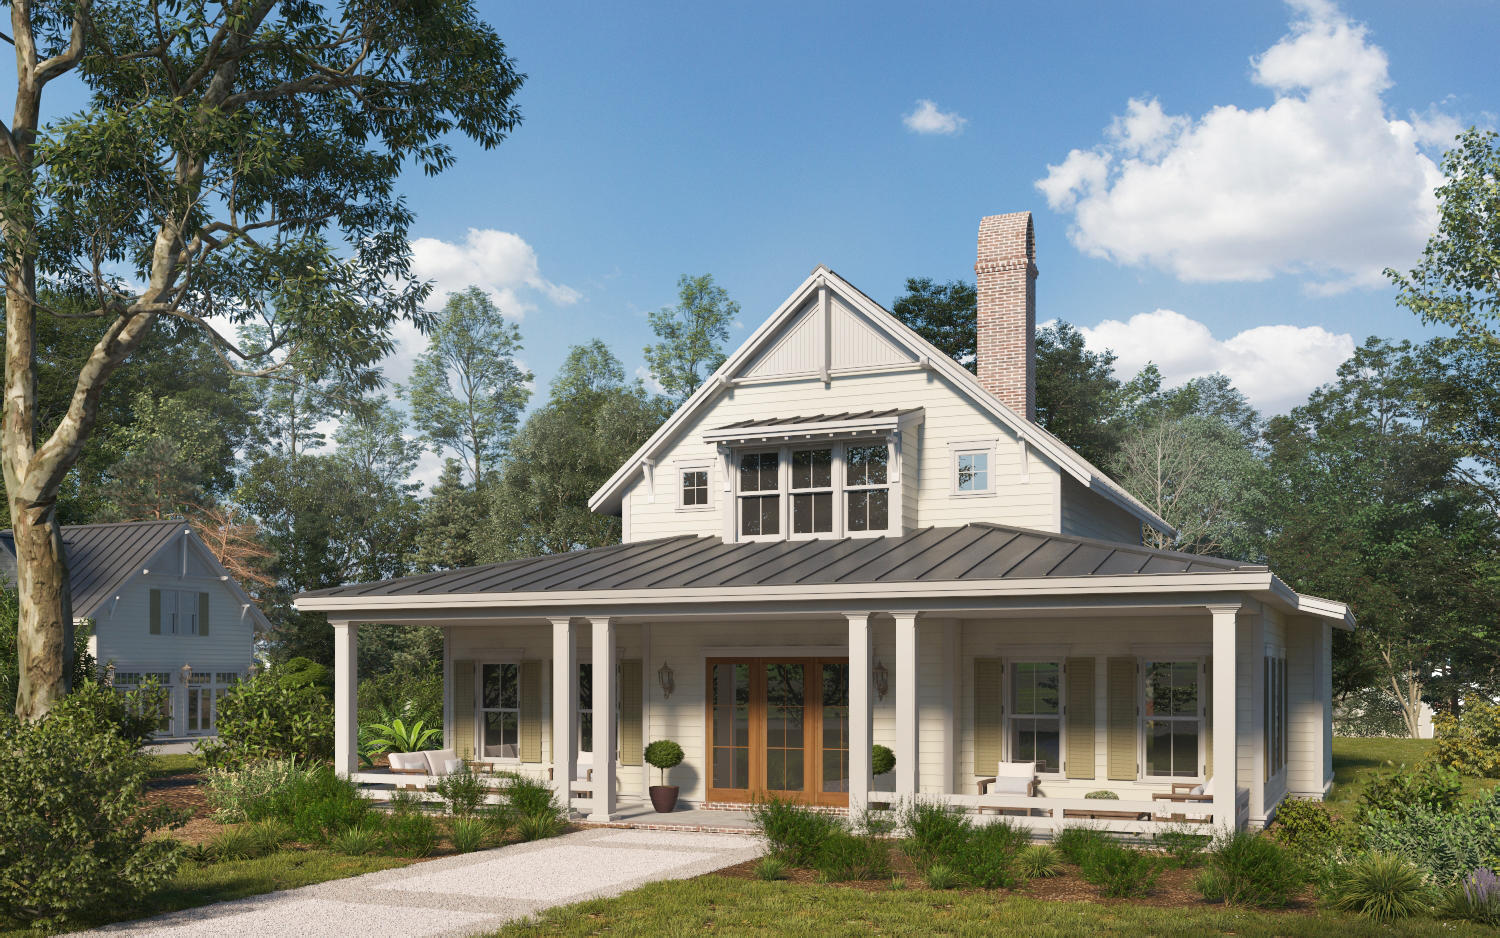 The Lowcountry Farmhouse Plan in The Highlands, Chelsea, AL ... on historic farm house plans, 3 bedroom open floor plans, 3 bedroom shed plans, 2075 square feet house plans, 3 bedroom townhouse plans, 10 bedroom farmhouse plans, midwest farm house plans, 1 bedroom farmhouse plans, 6 bedroom farmhouse plans, 3 story farmhouse plans, 4 bedroom farmhouse plans,